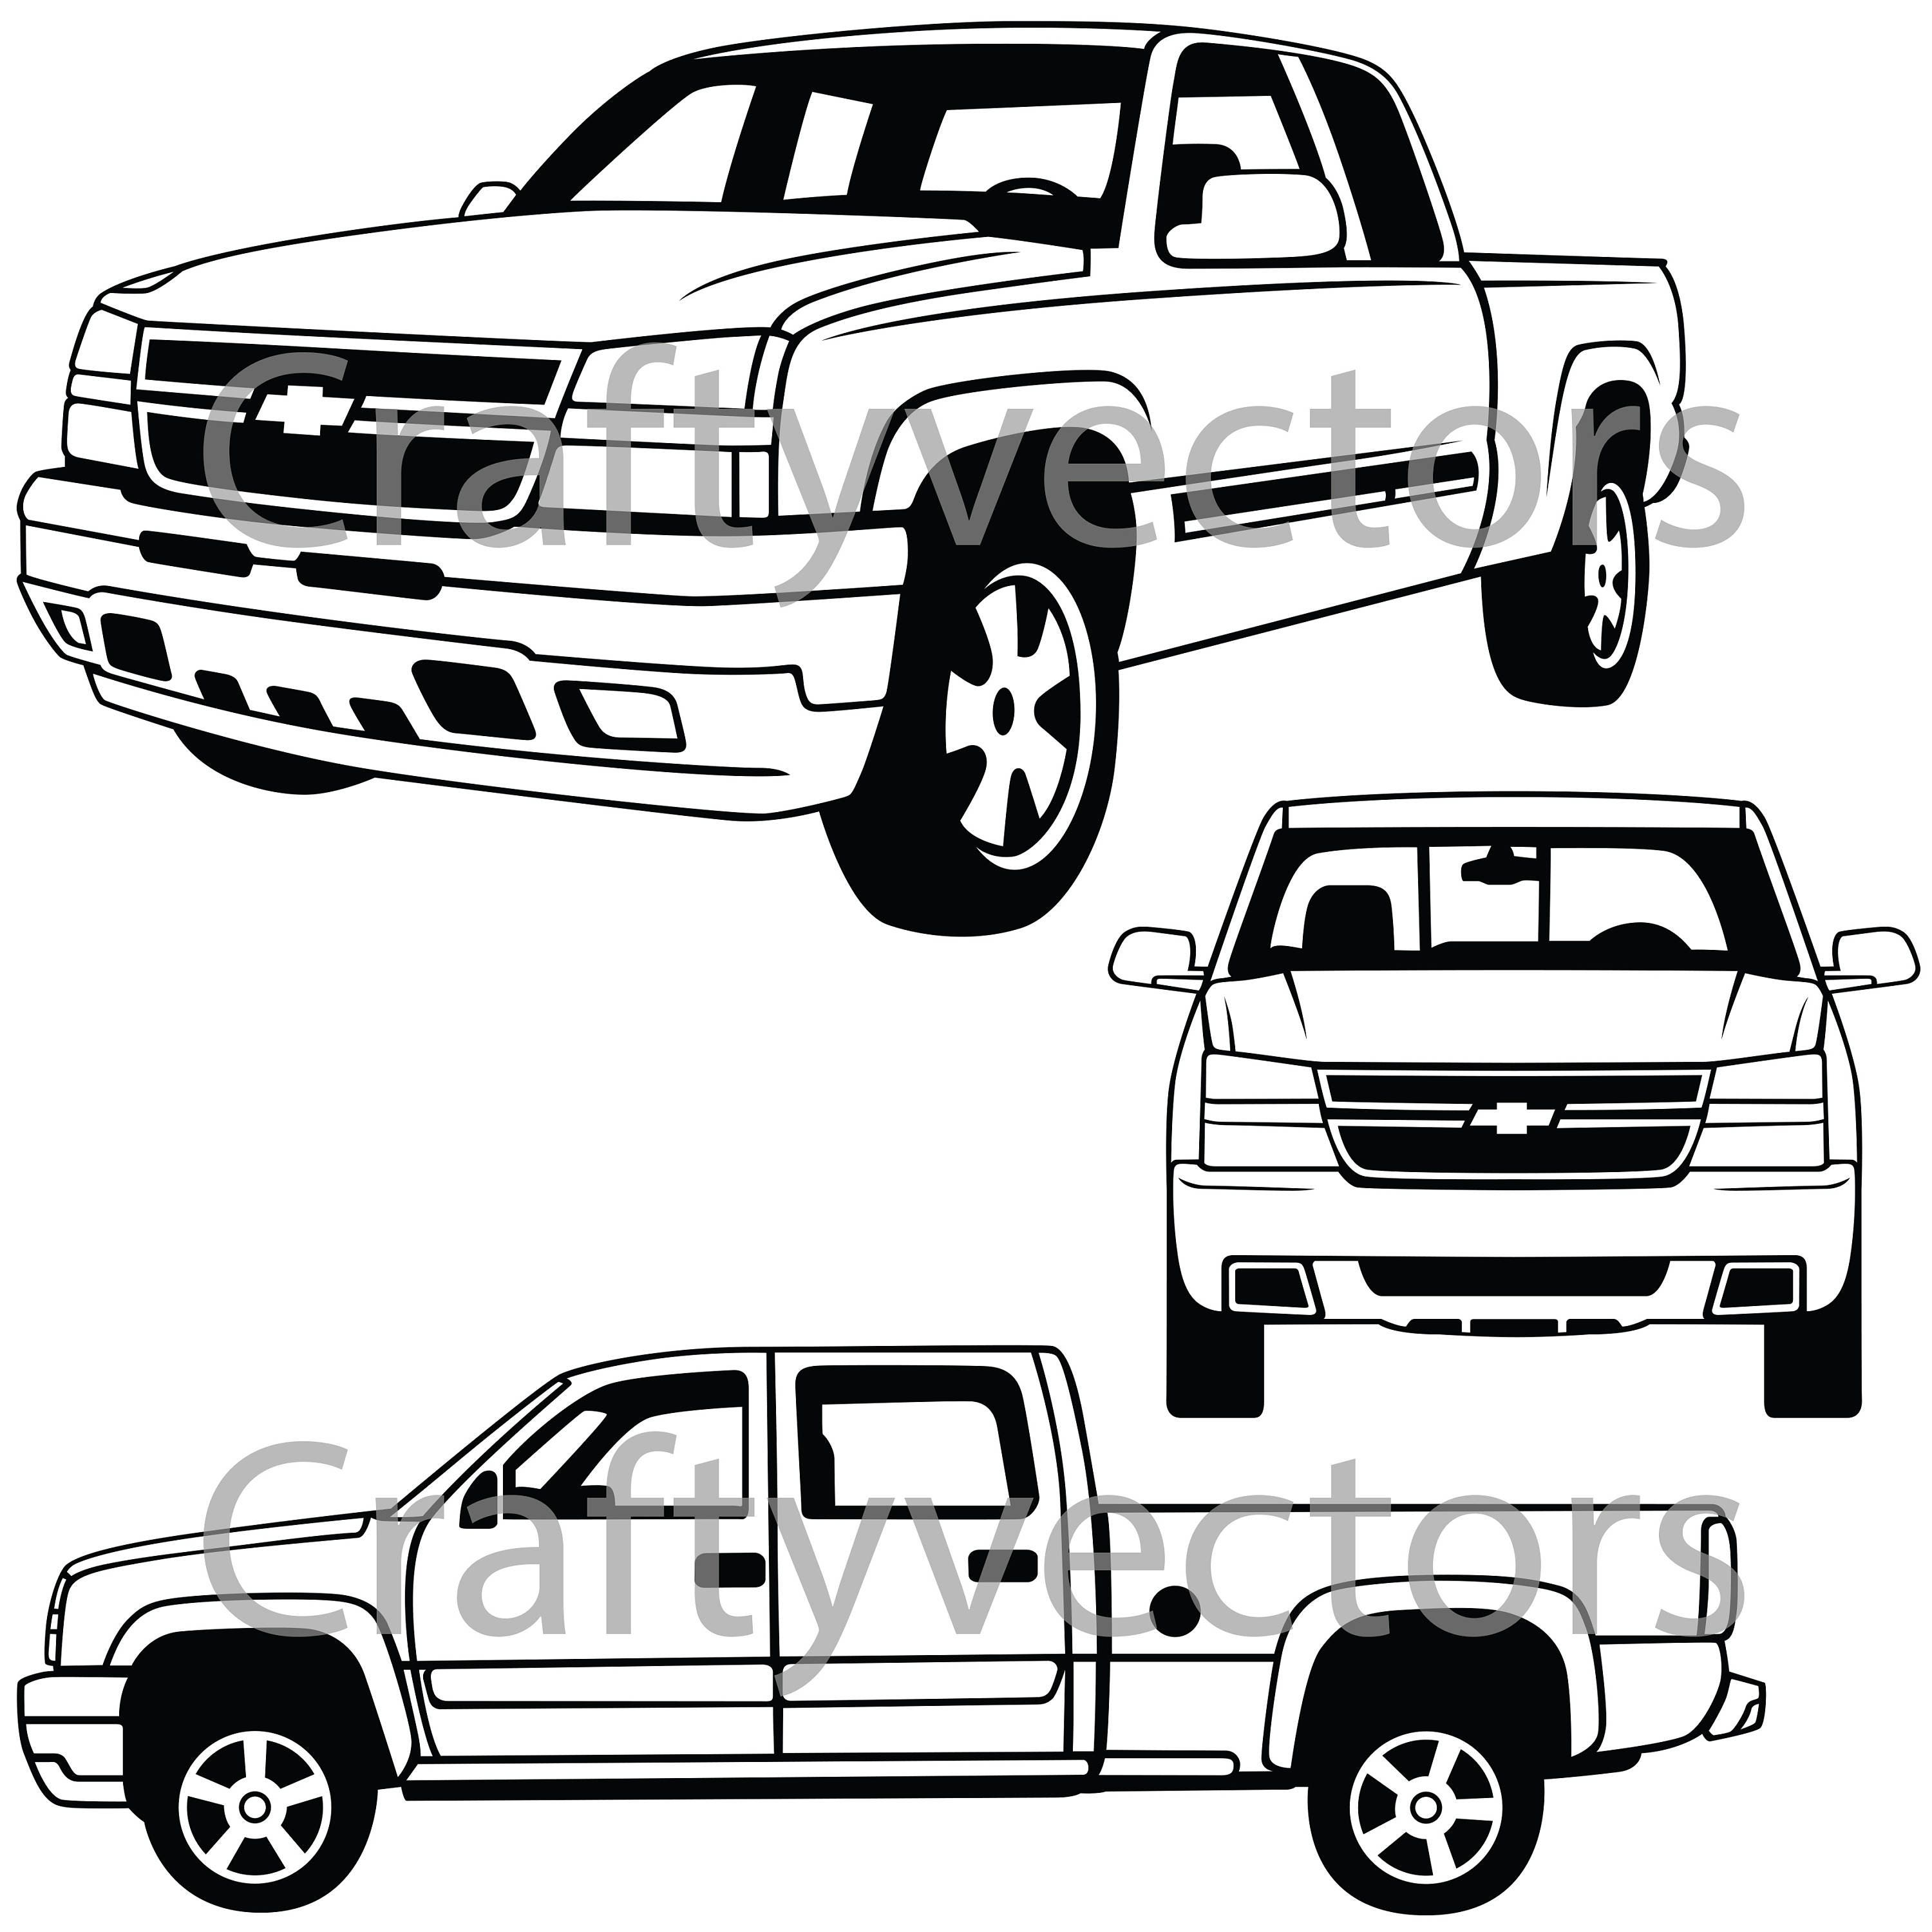 2006 Chevrolet Silverado Vector File as well P 0900c1528003d203 further 7ljn7 1998 K1500 4wd Won T 4wd moreover 2000 Chevy Silverado Cooling System Diagram moreover 1990 Gmc Sierra 1500 Wiring Diagram. on 1994 chevy silverado 1500